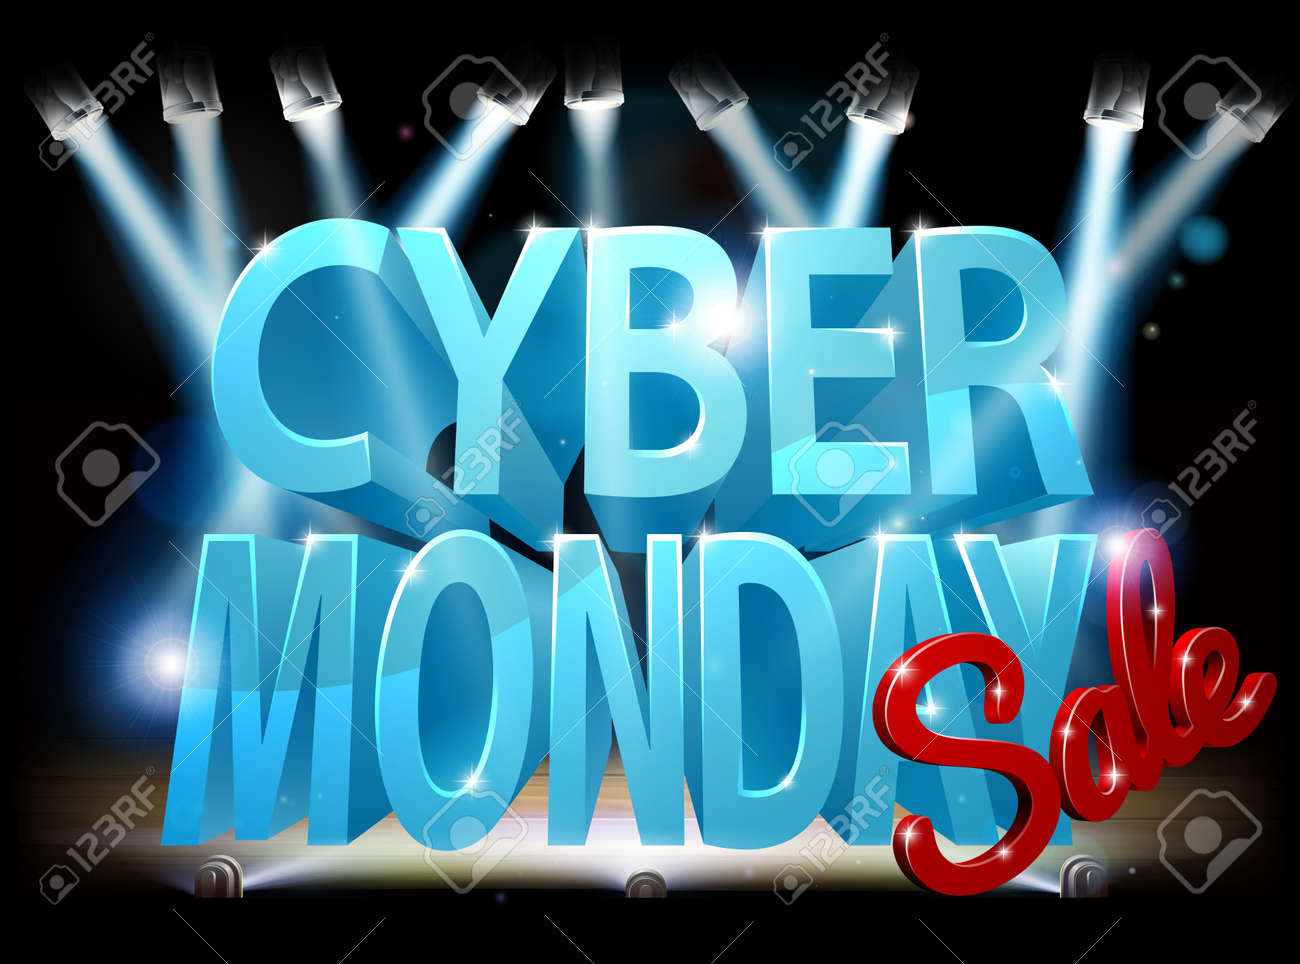 Cyber Monday Sale Stage Sign - 89934088